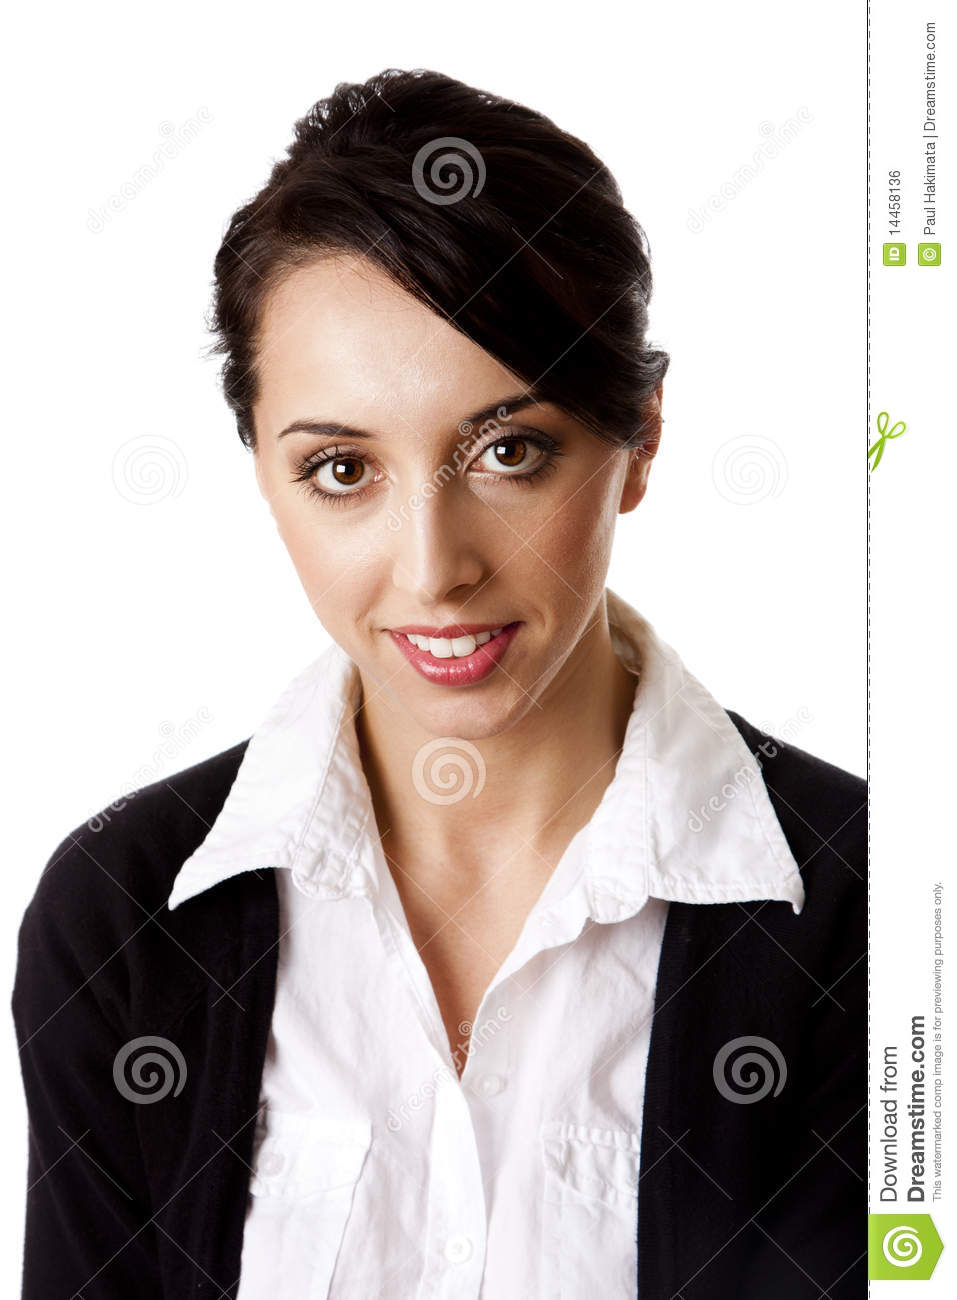 Corporate Woman Stock Photography Cartoondealer Com 513614